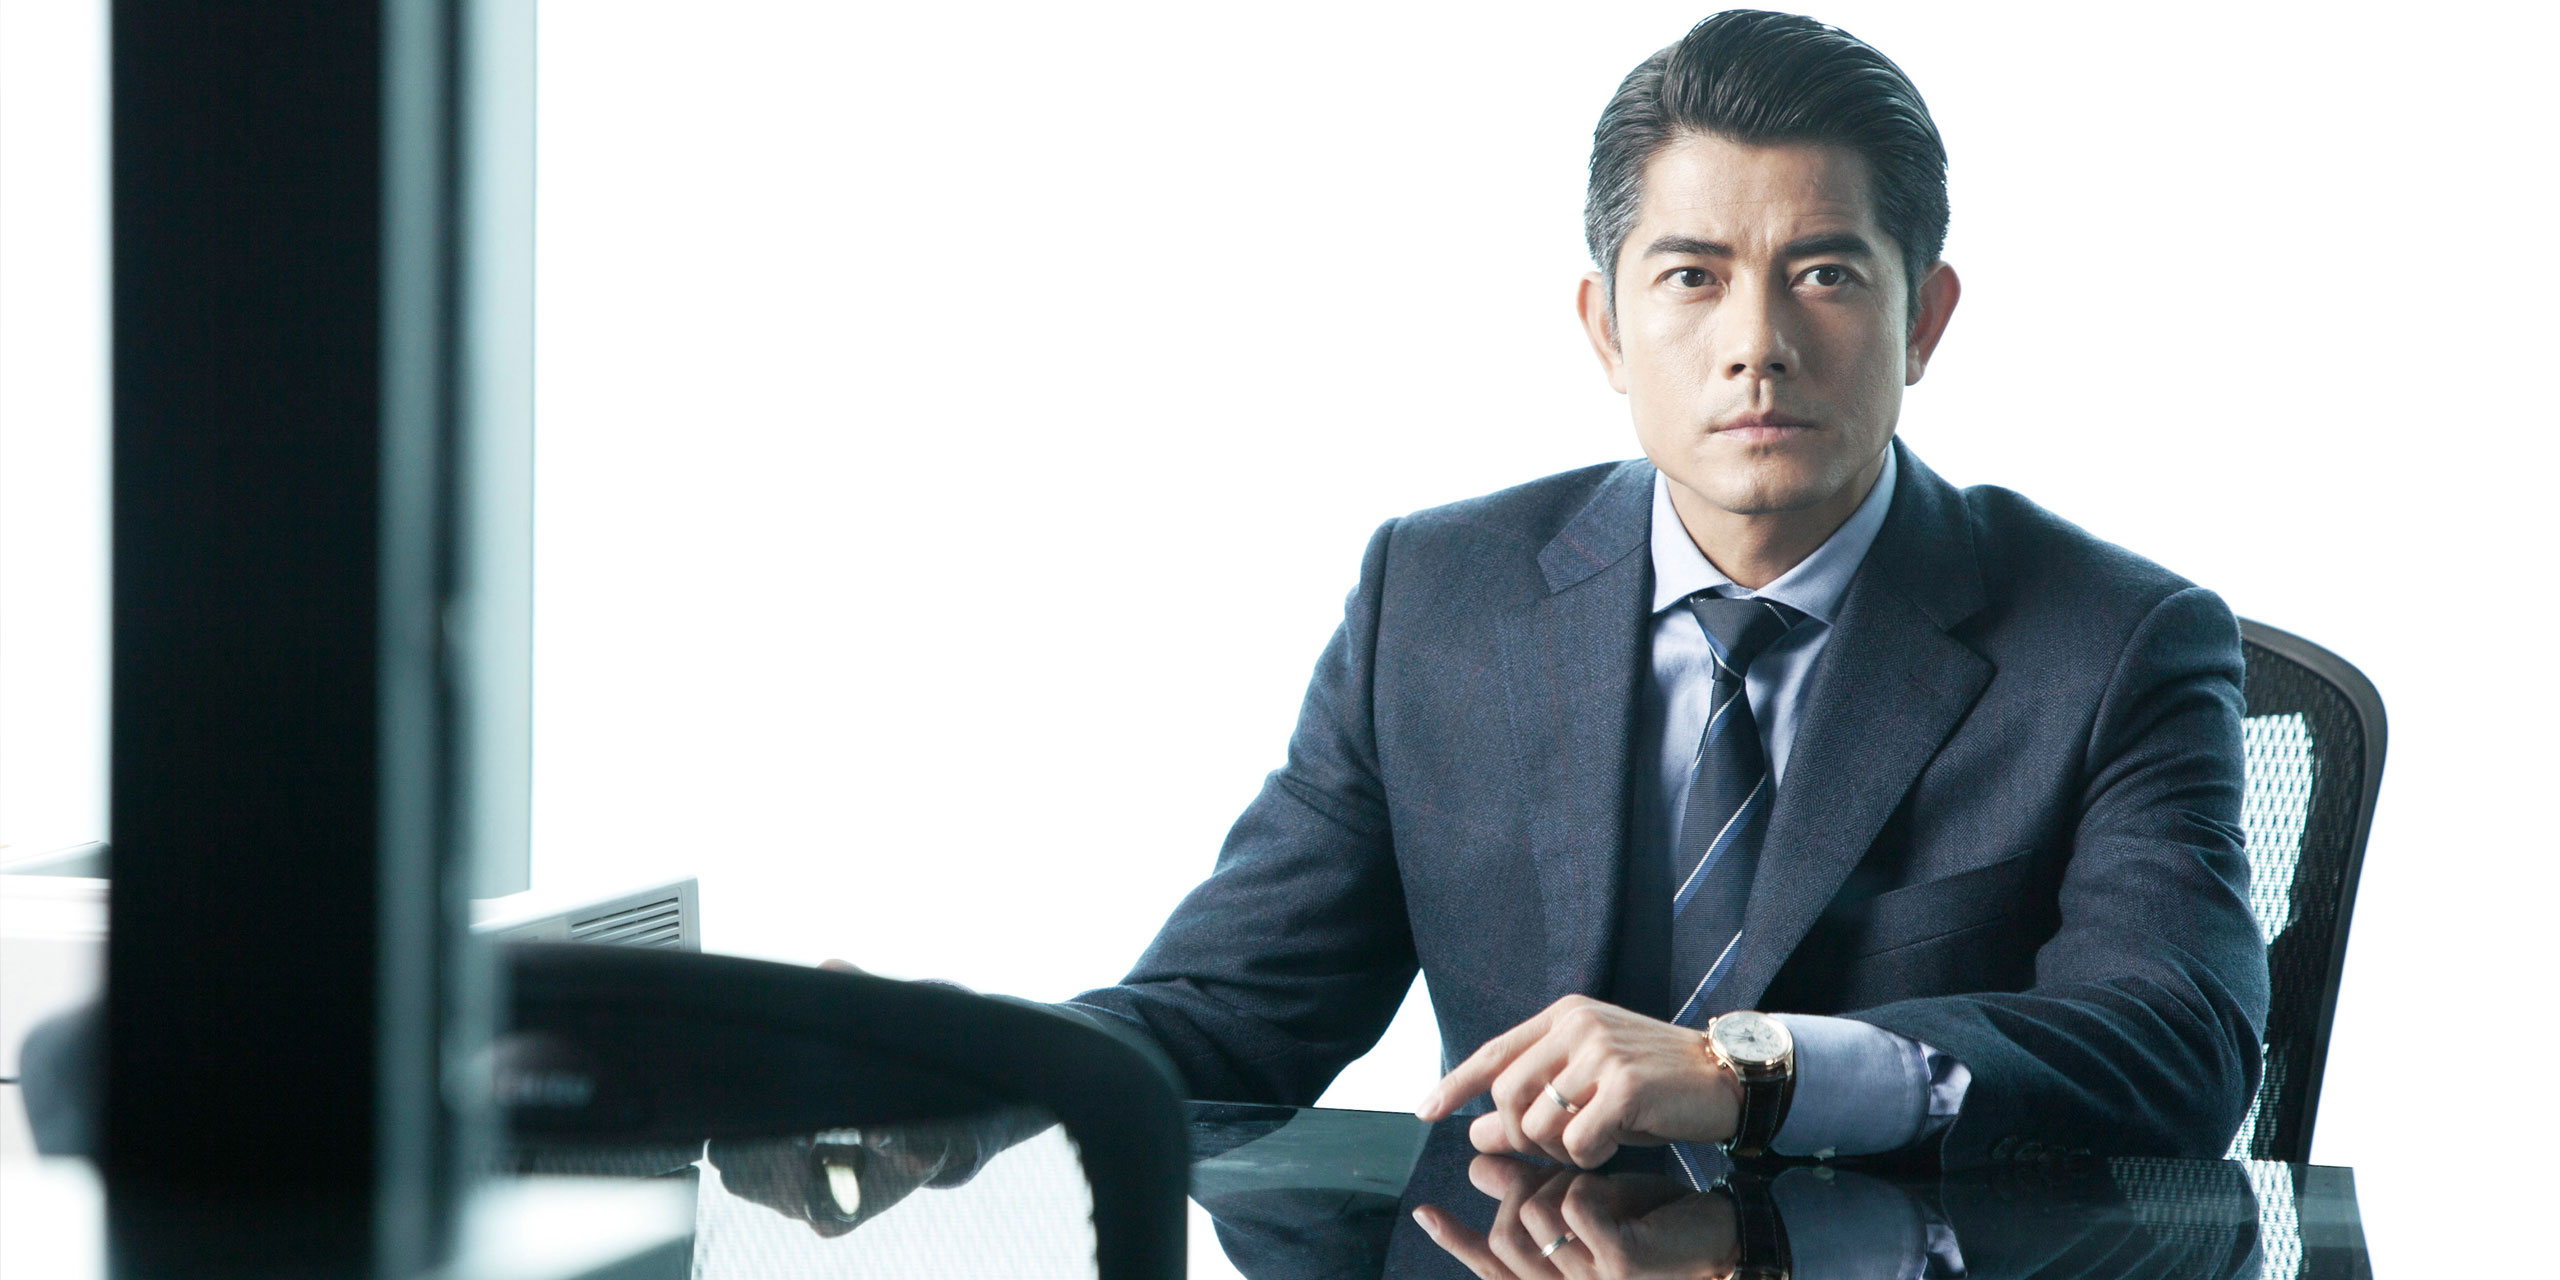 luxury watches in film cold war starring aaron kwok 2560 x 1280